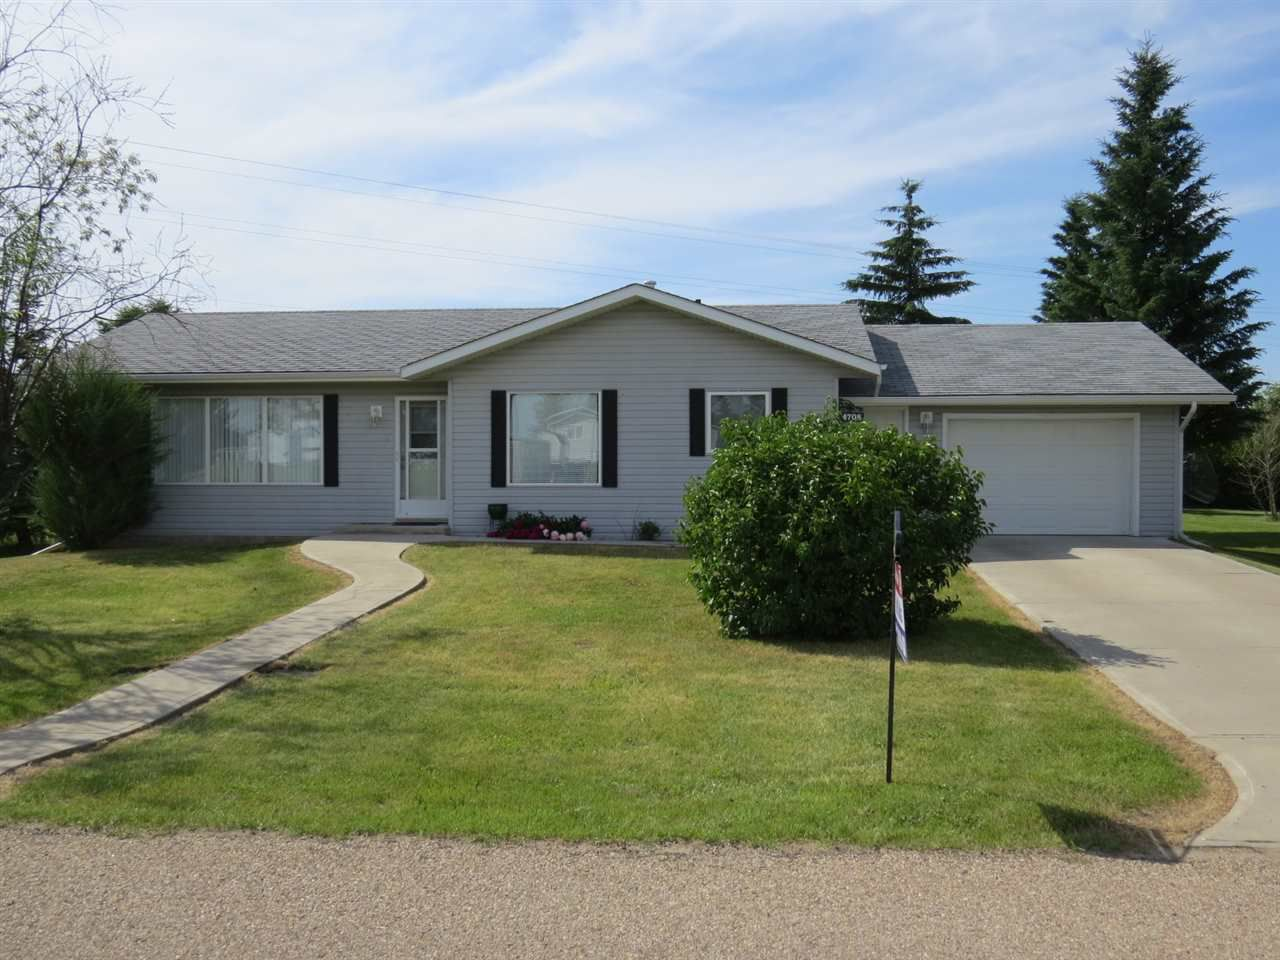 Main Photo: 4708 50 Street: Amisk House for sale : MLS®# E4154843